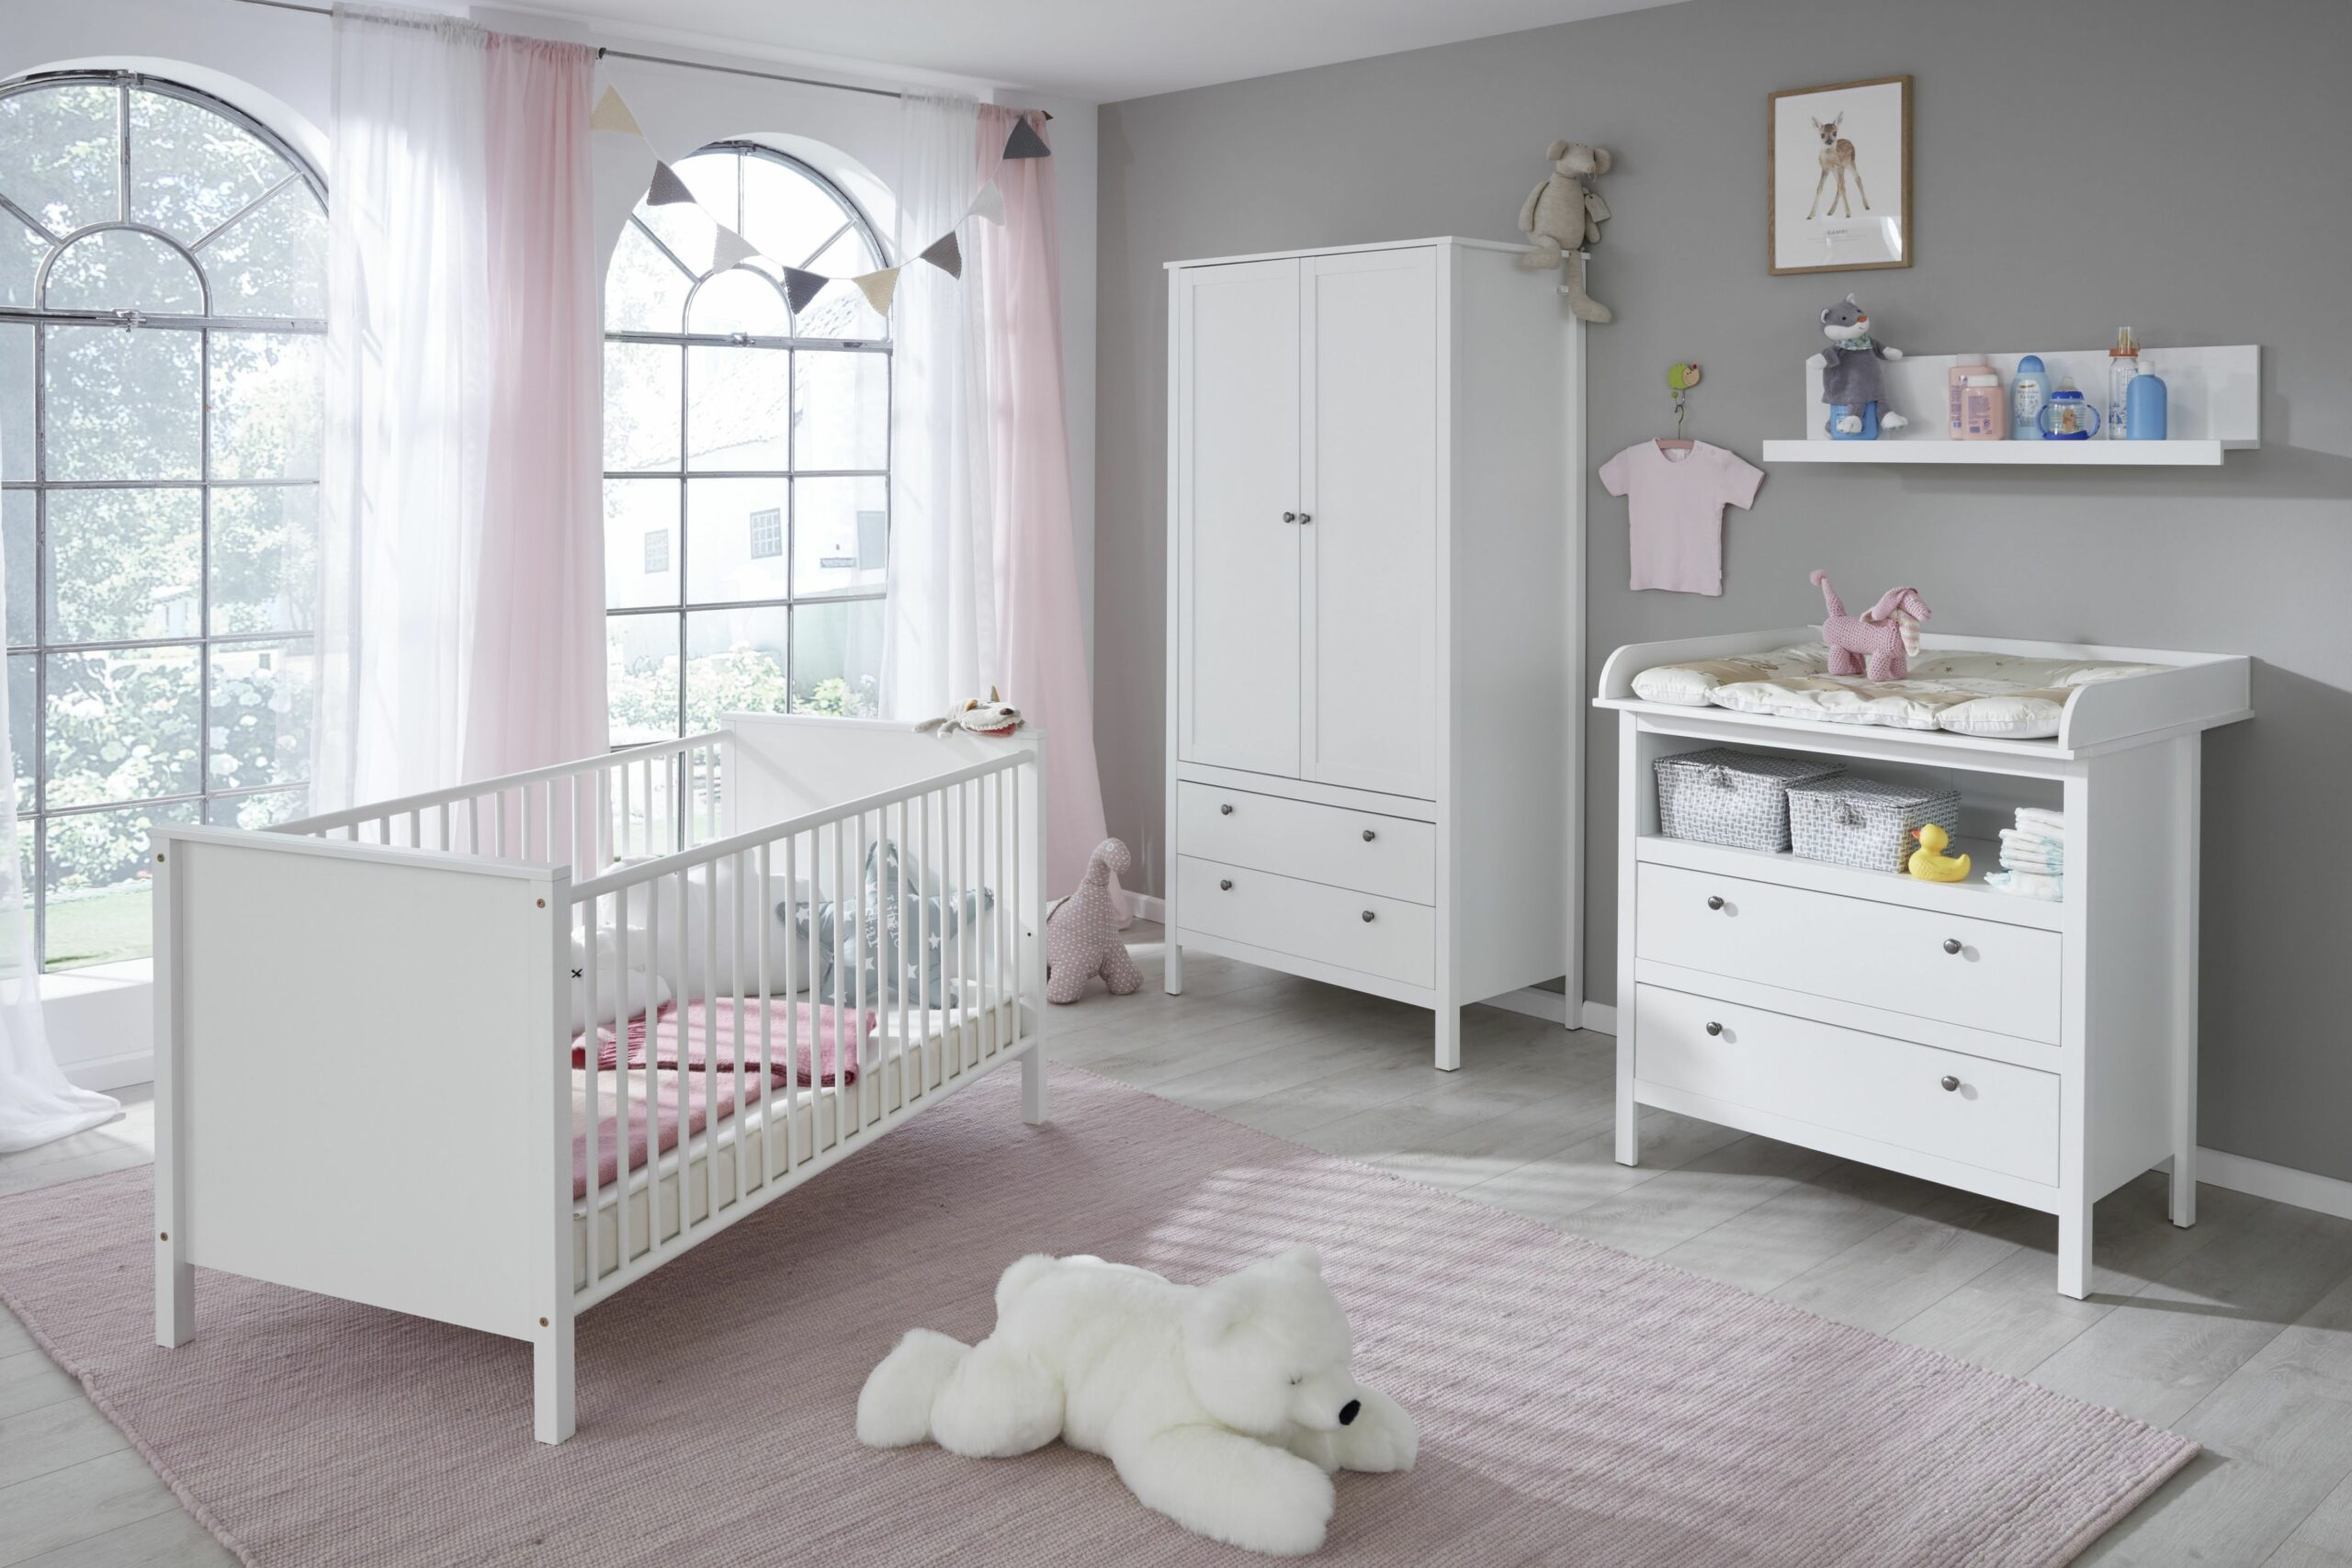 Ole - Baby Room Furniture - baby room photos